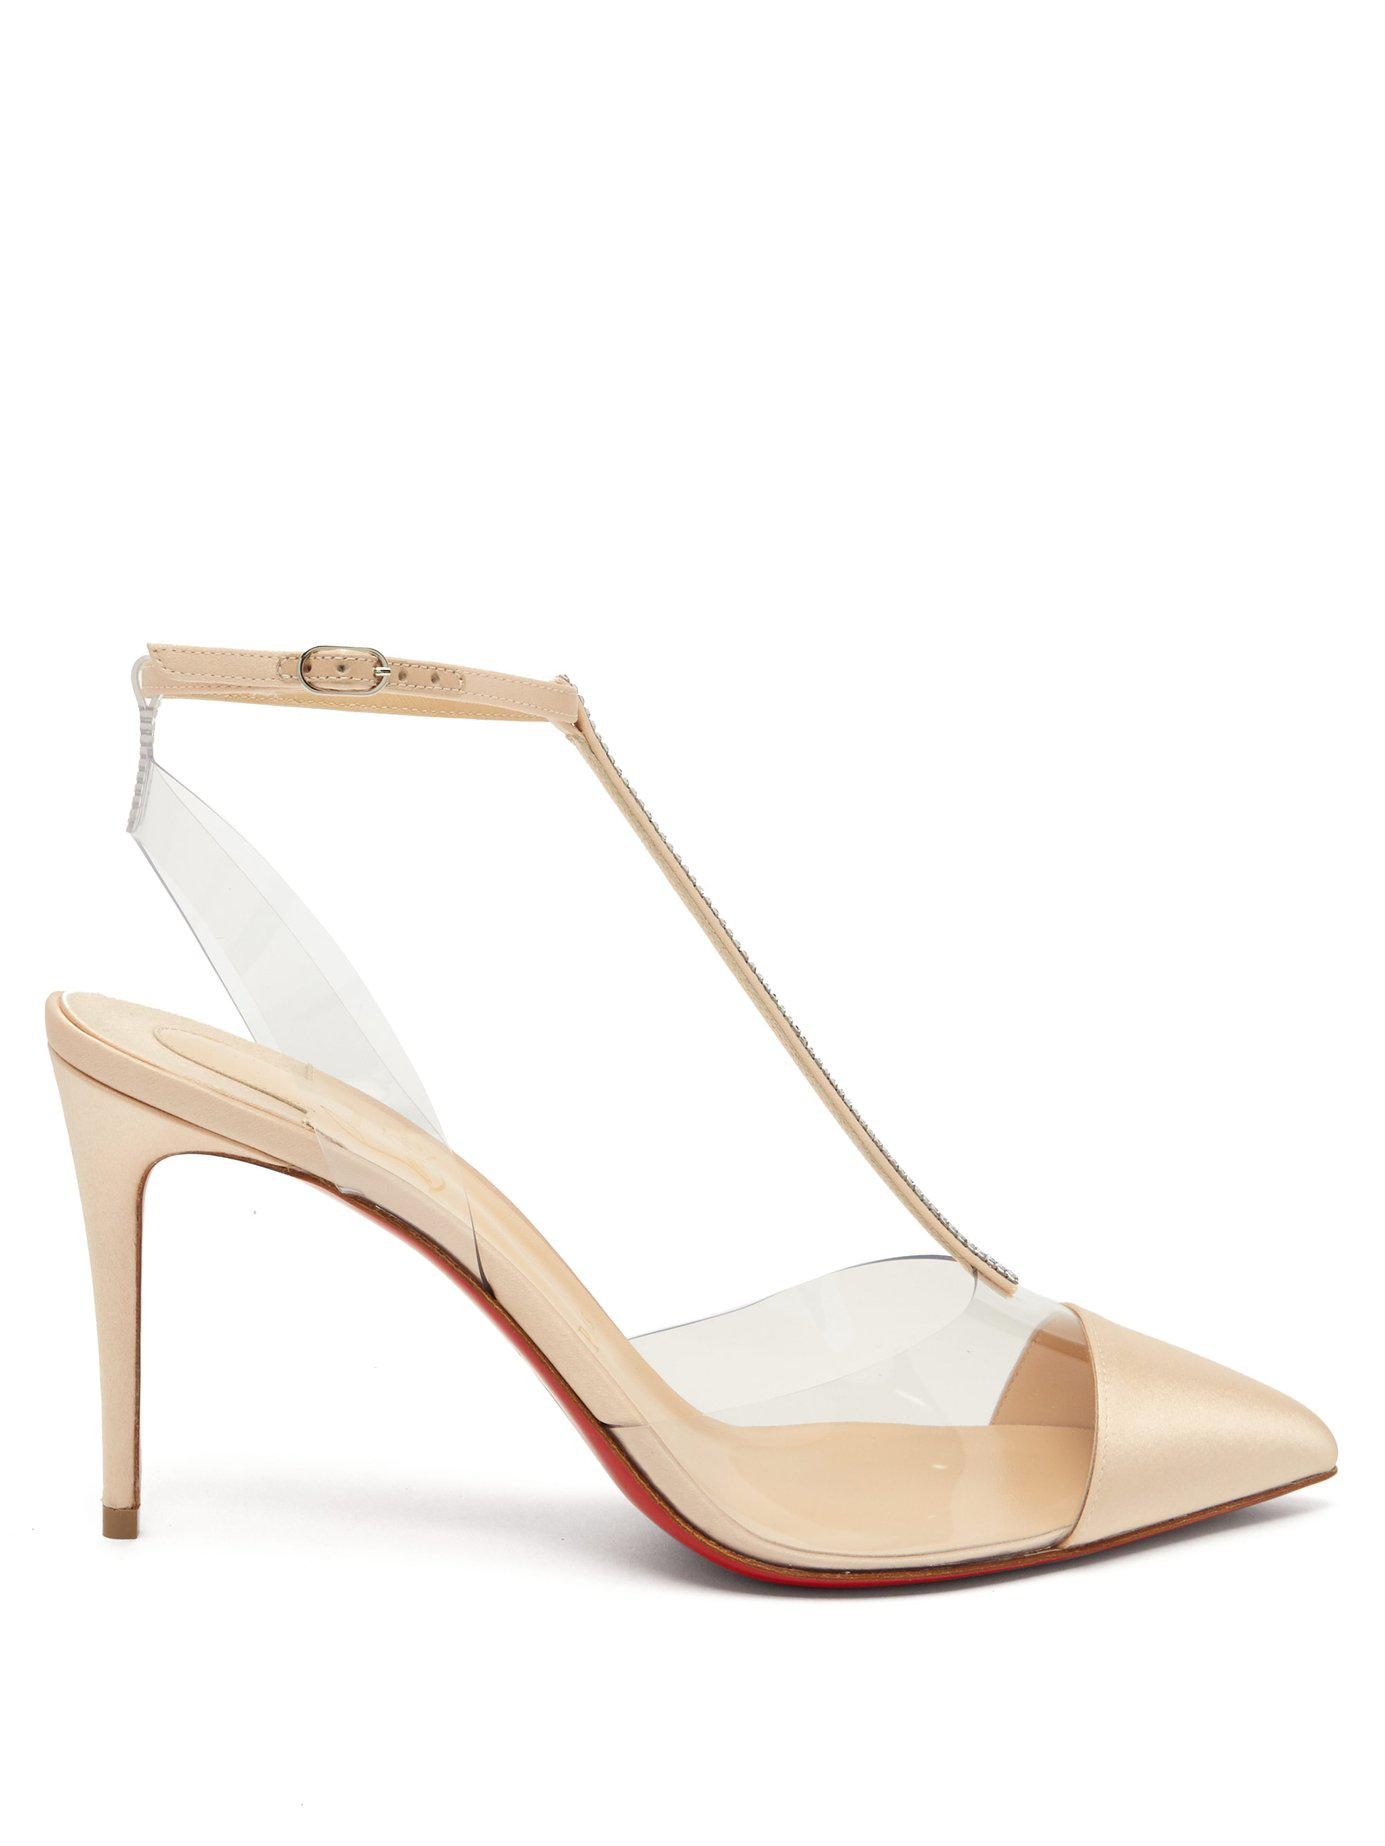 d84b54808ae Christian Louboutin. Women s Nosy 85 Crystal Embellished Satin Pumps